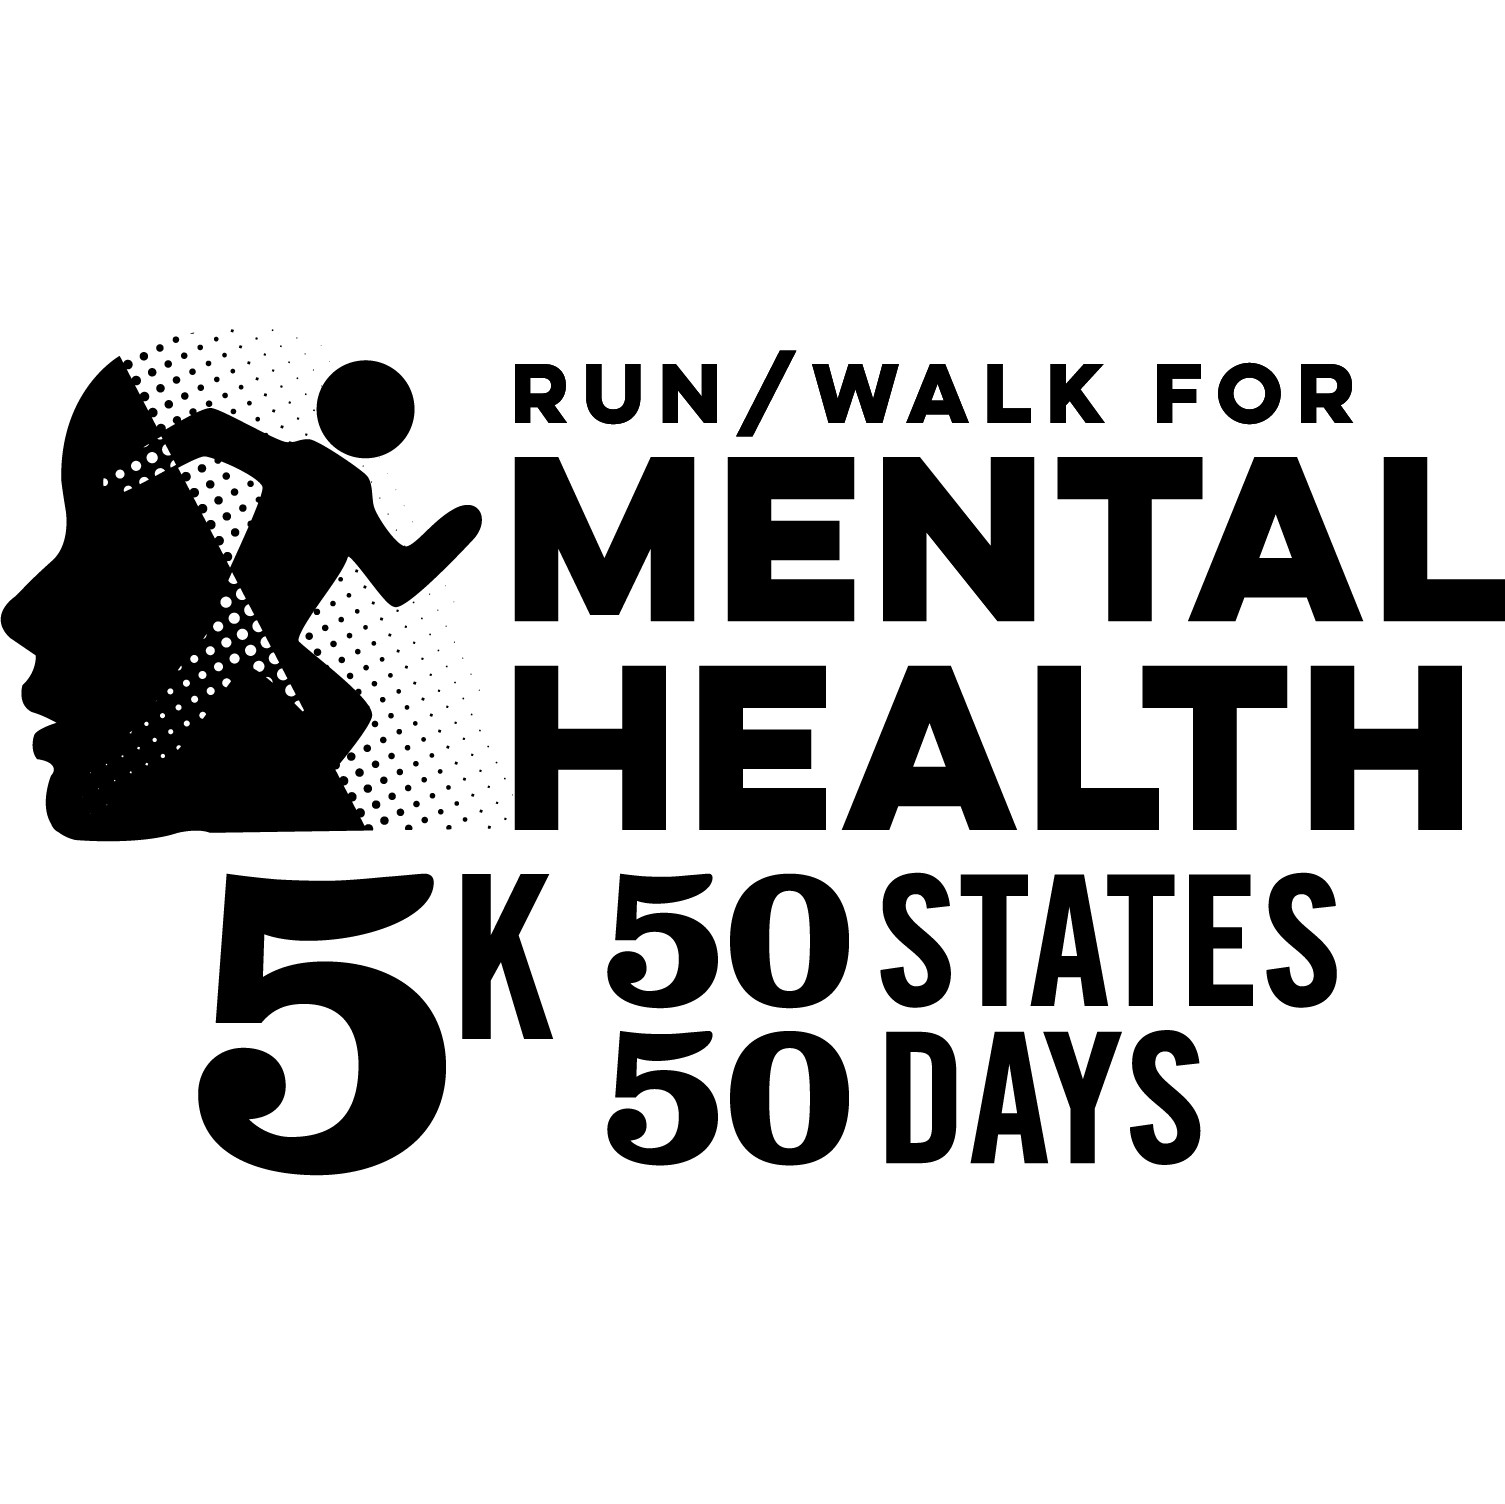 Auburn Al 2019 Run Walk For Mental Health 5k 50 States 50